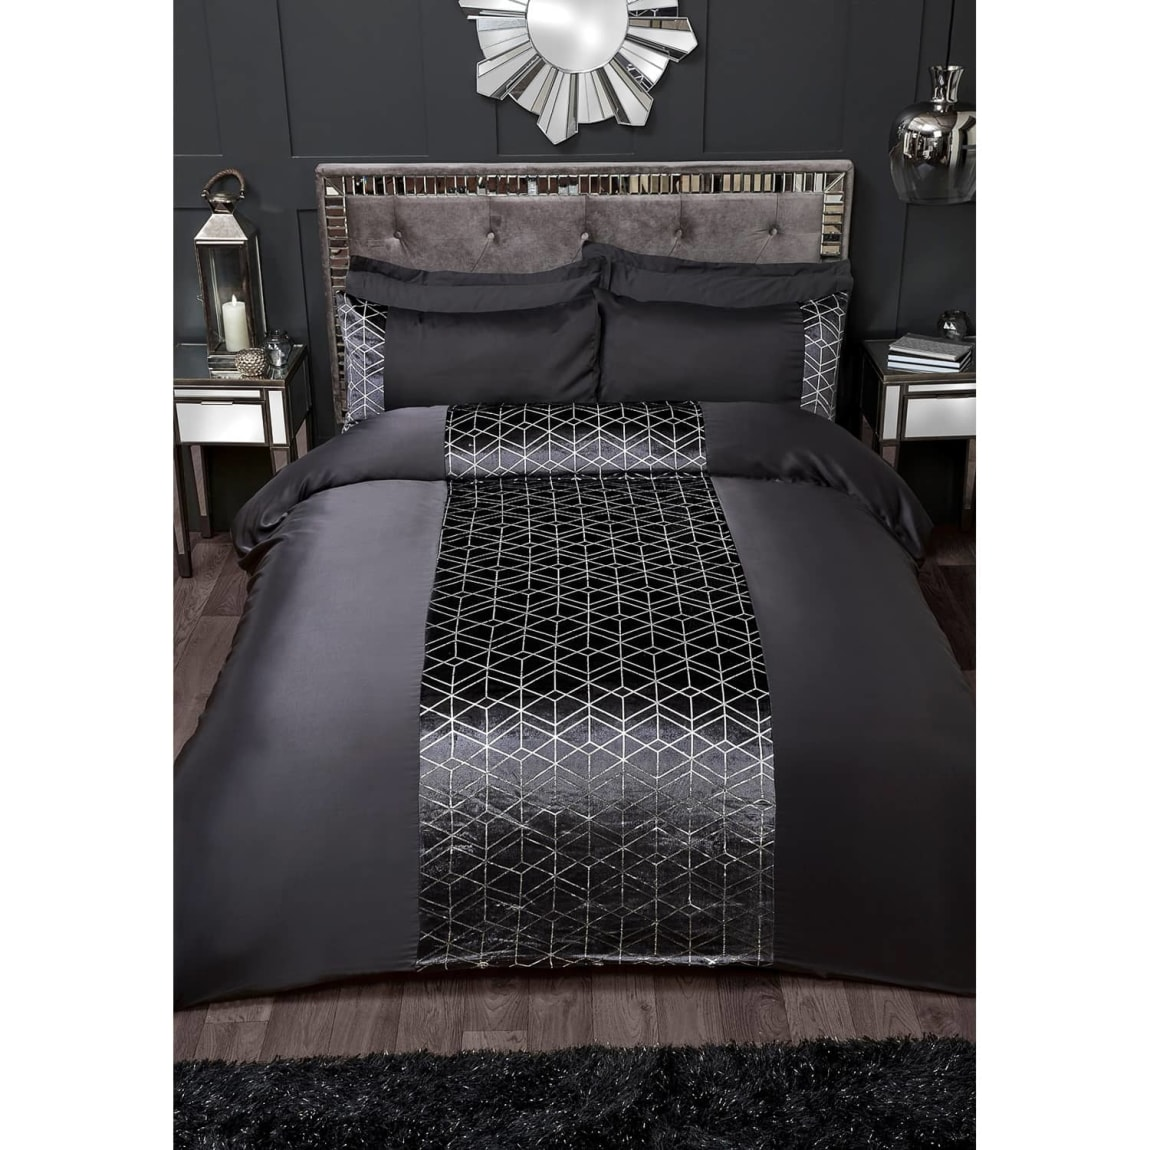 Karina Bailey Lexi Double Duvet Set - Charcoal